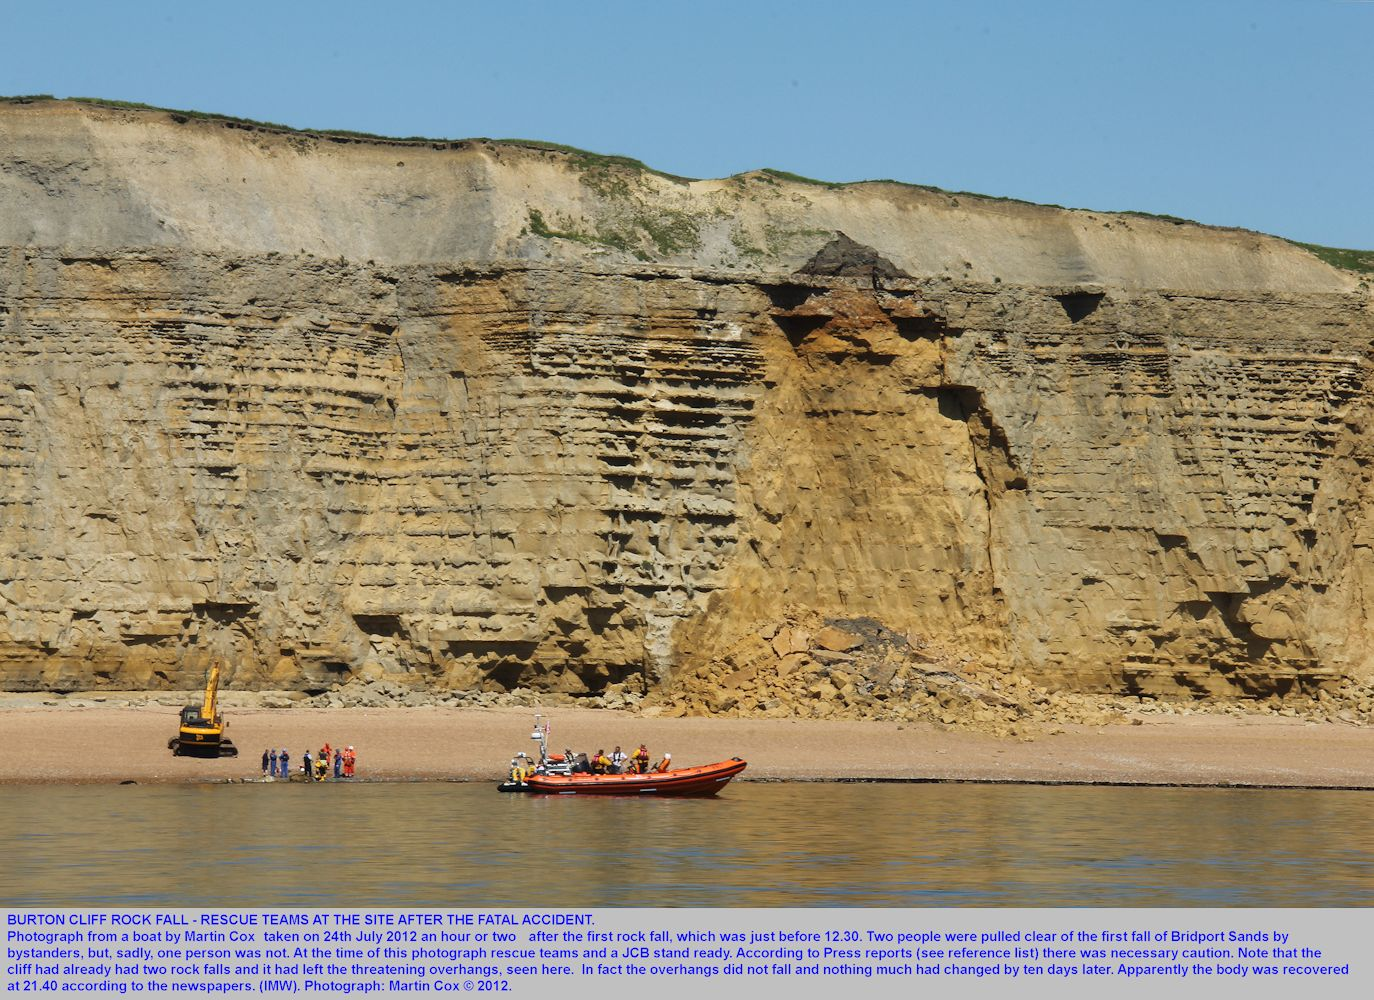 Rock fall accident at Burton Cliff, rescue teams at the beach seen at about two hours after the fall, photograph by Martin Cox from a boat